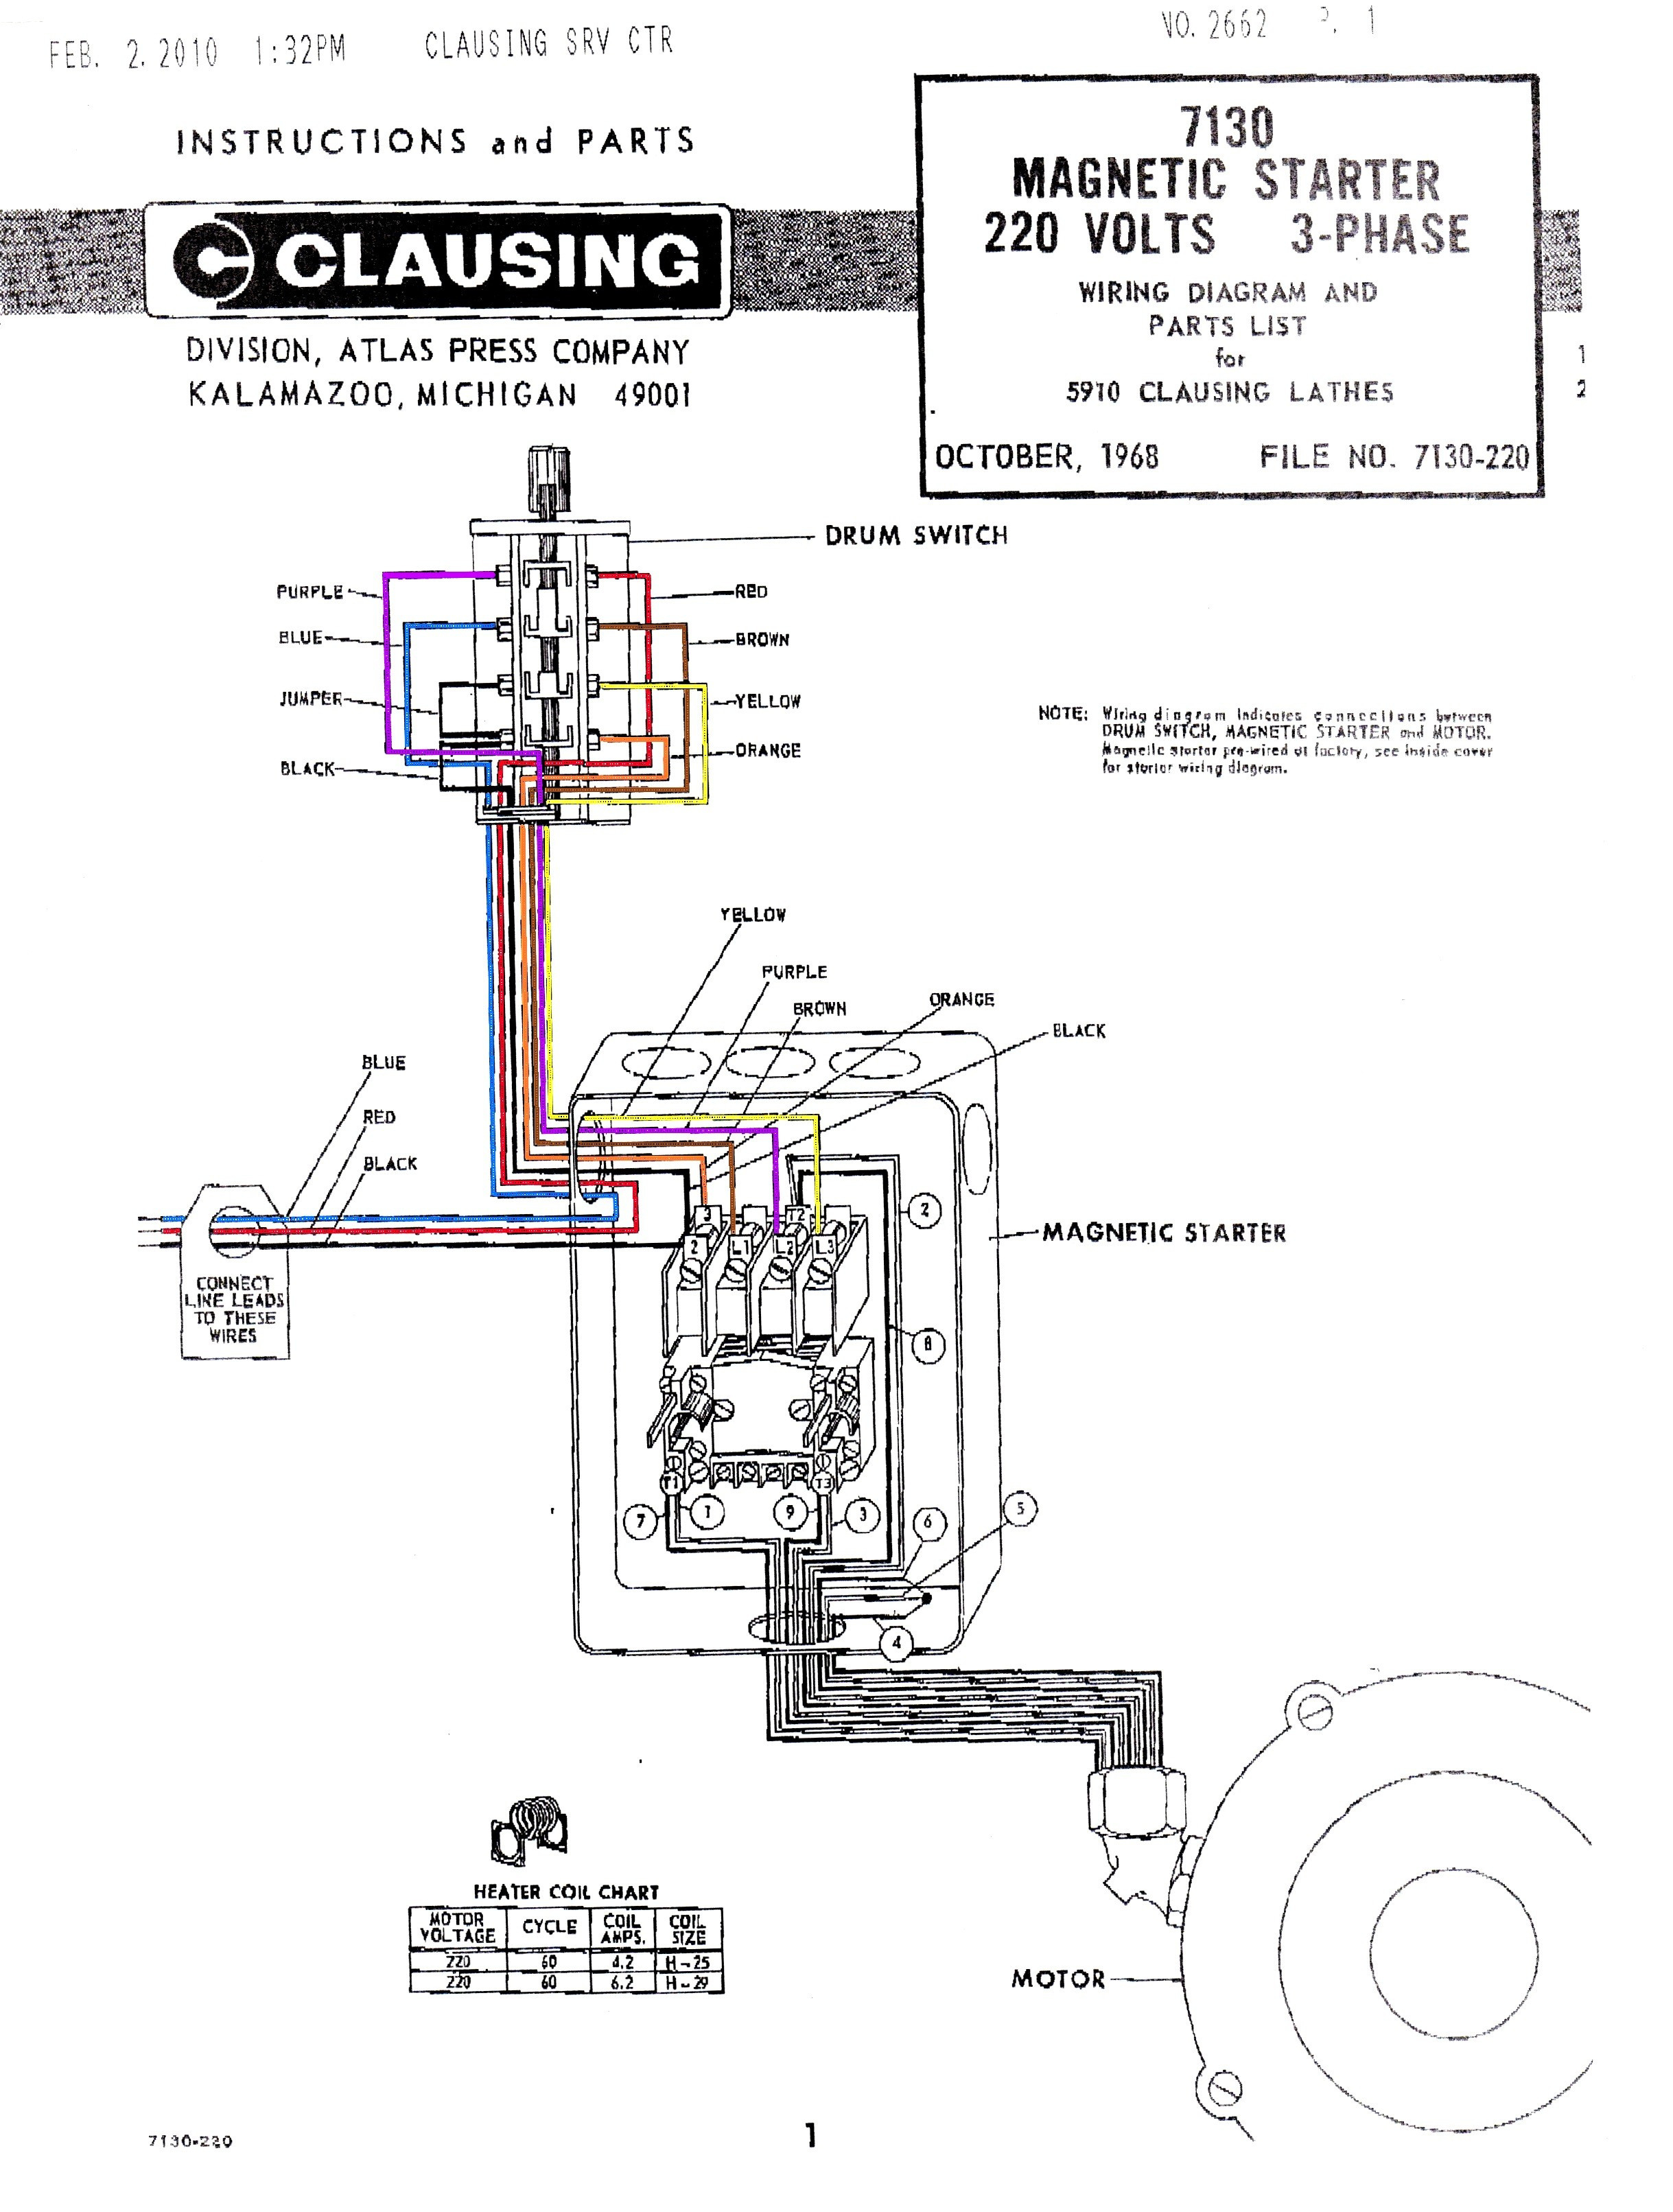 hight resolution of srv wiring diagram wiring diagram srv wiring diagram electrical wiring diagram3 phase switch wiring diagram free